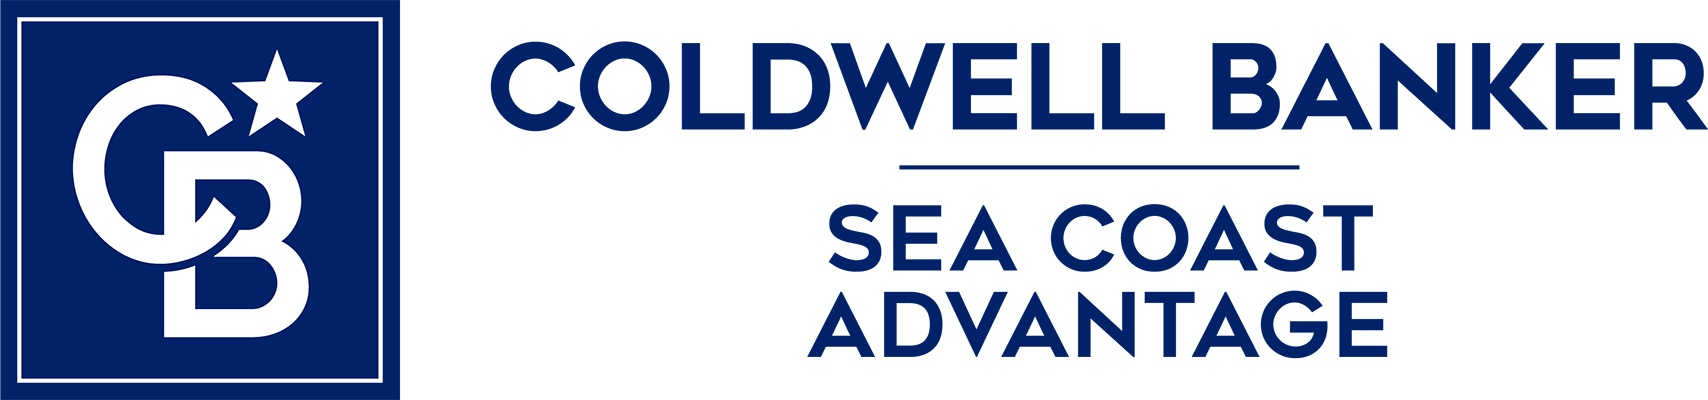 Ross Howe - Coldwell Banker Sea Coast Advantage Realty